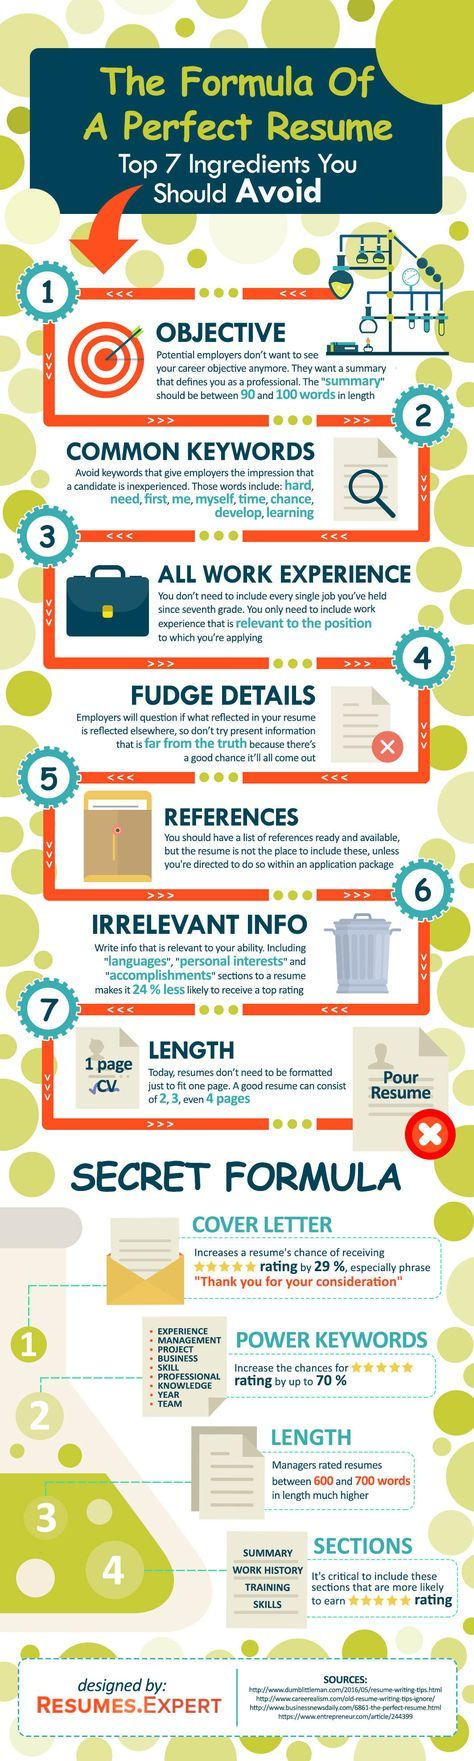 The Formula of a Perfect Resume Infographic Perfect